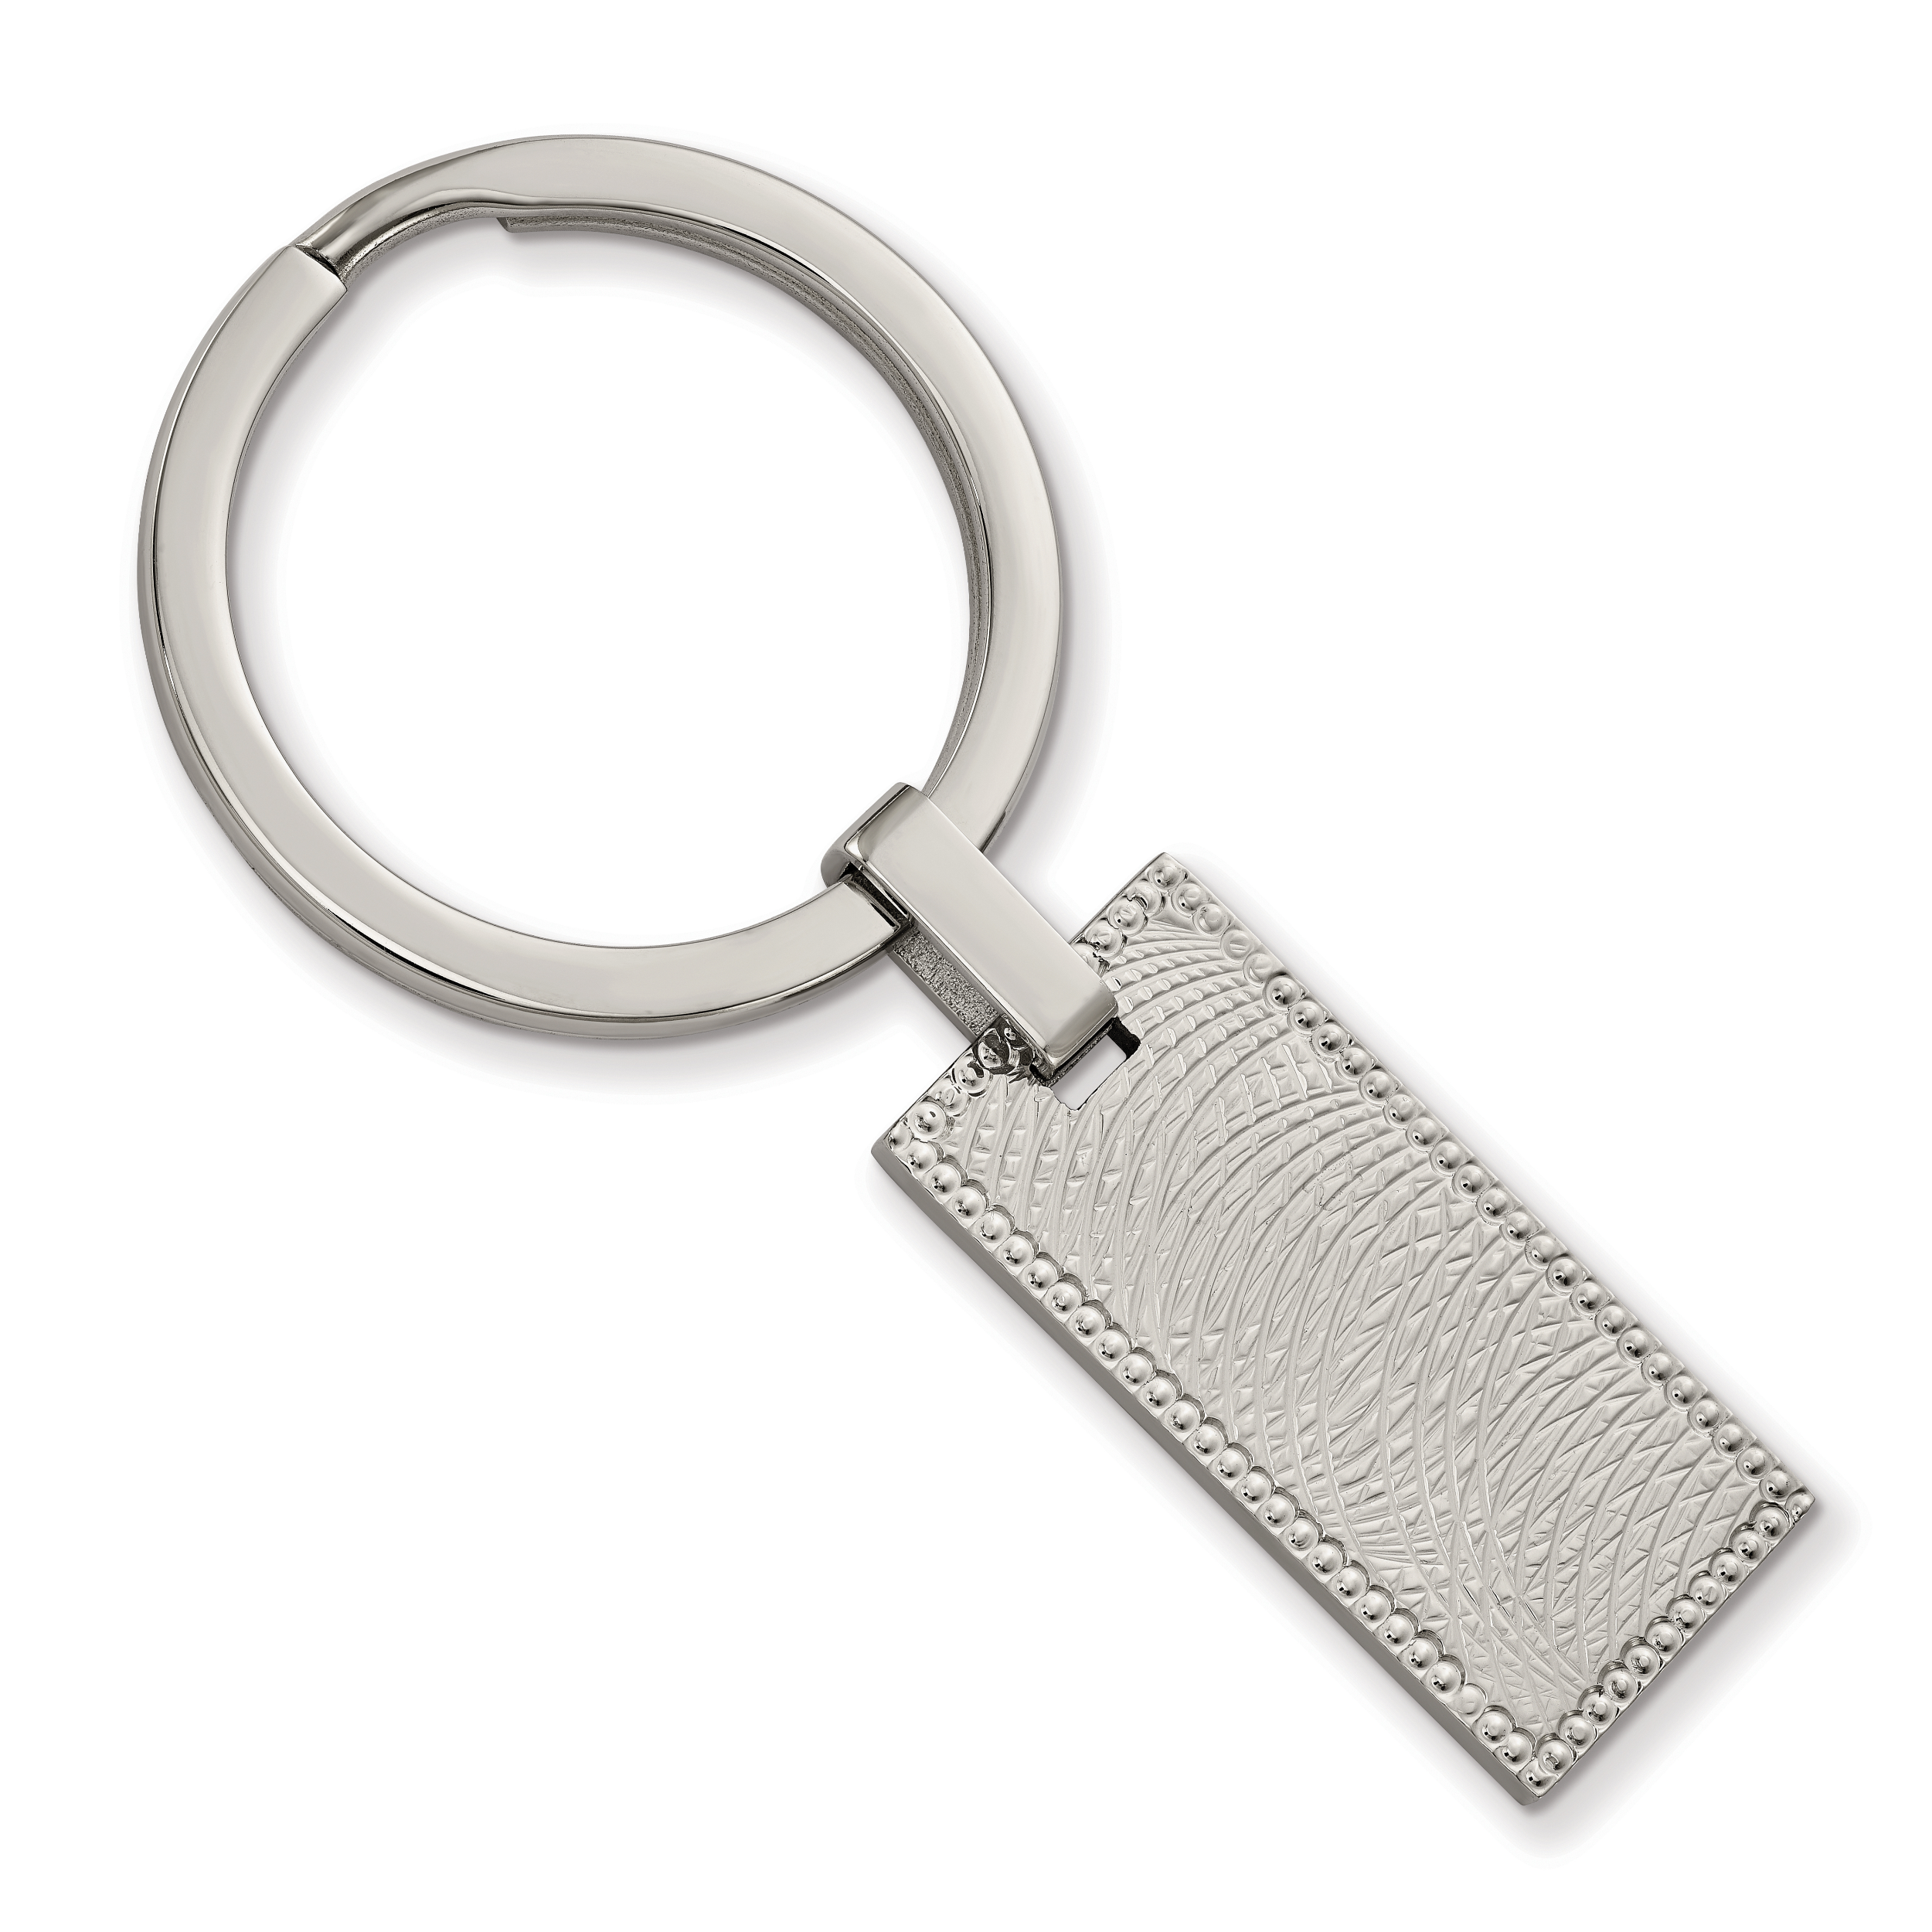 Stainless Steel Polished and Textured Rectangular Key Ring by CoutureJewelers